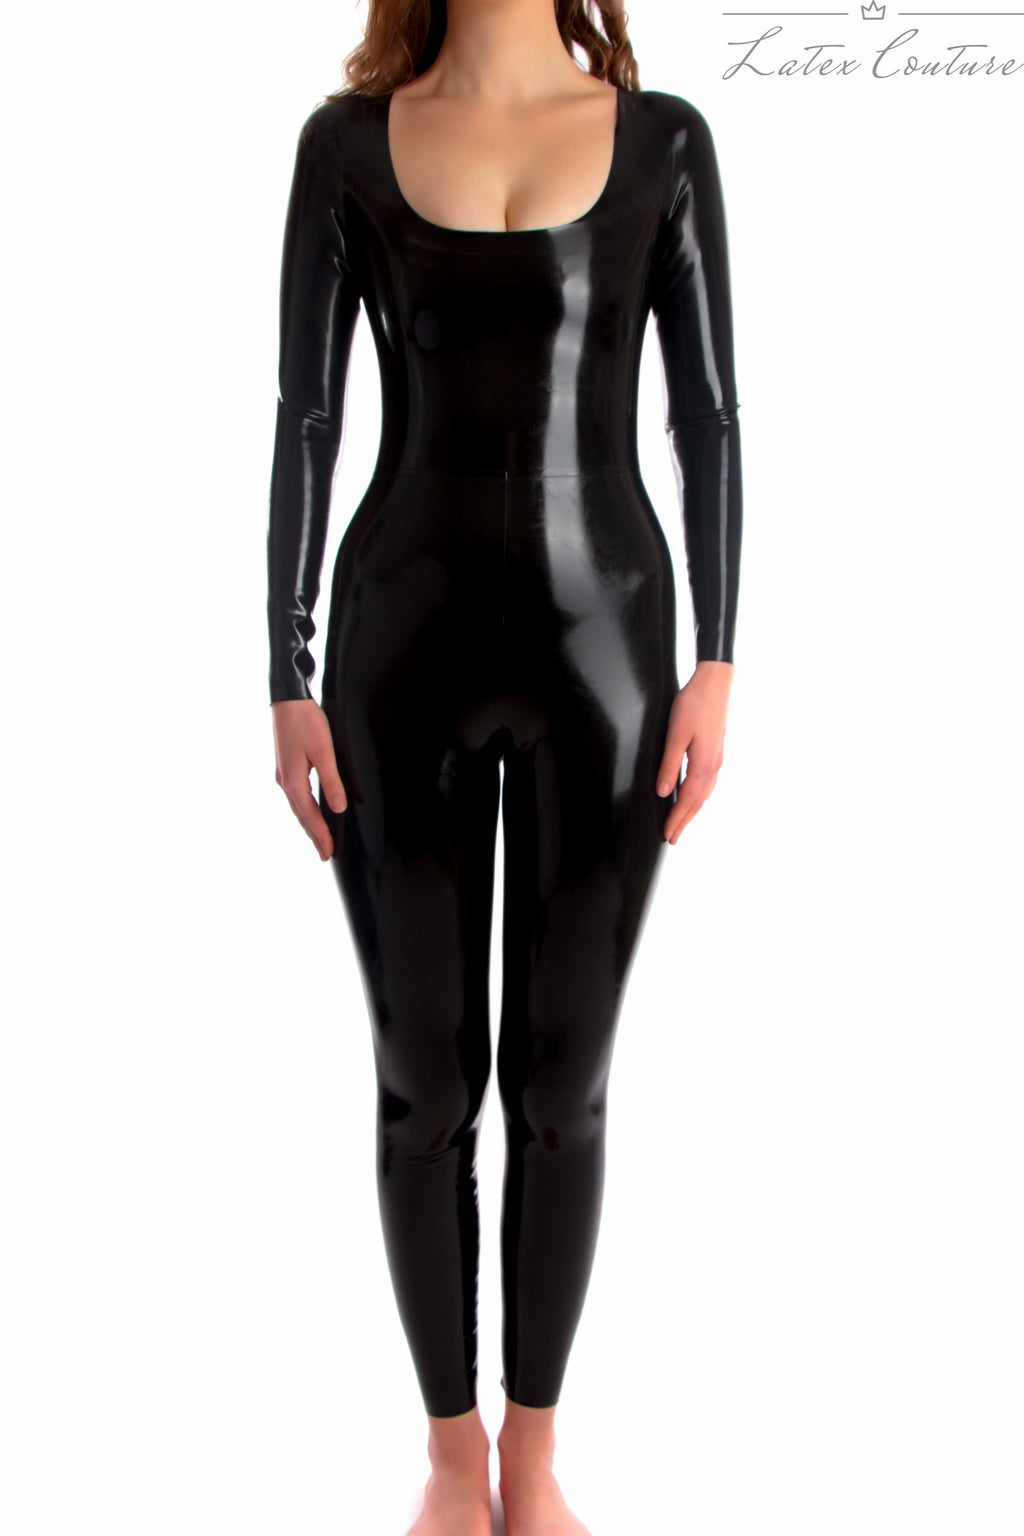 Latex Catsuit - Latex Scoop Neck Catsuit £160